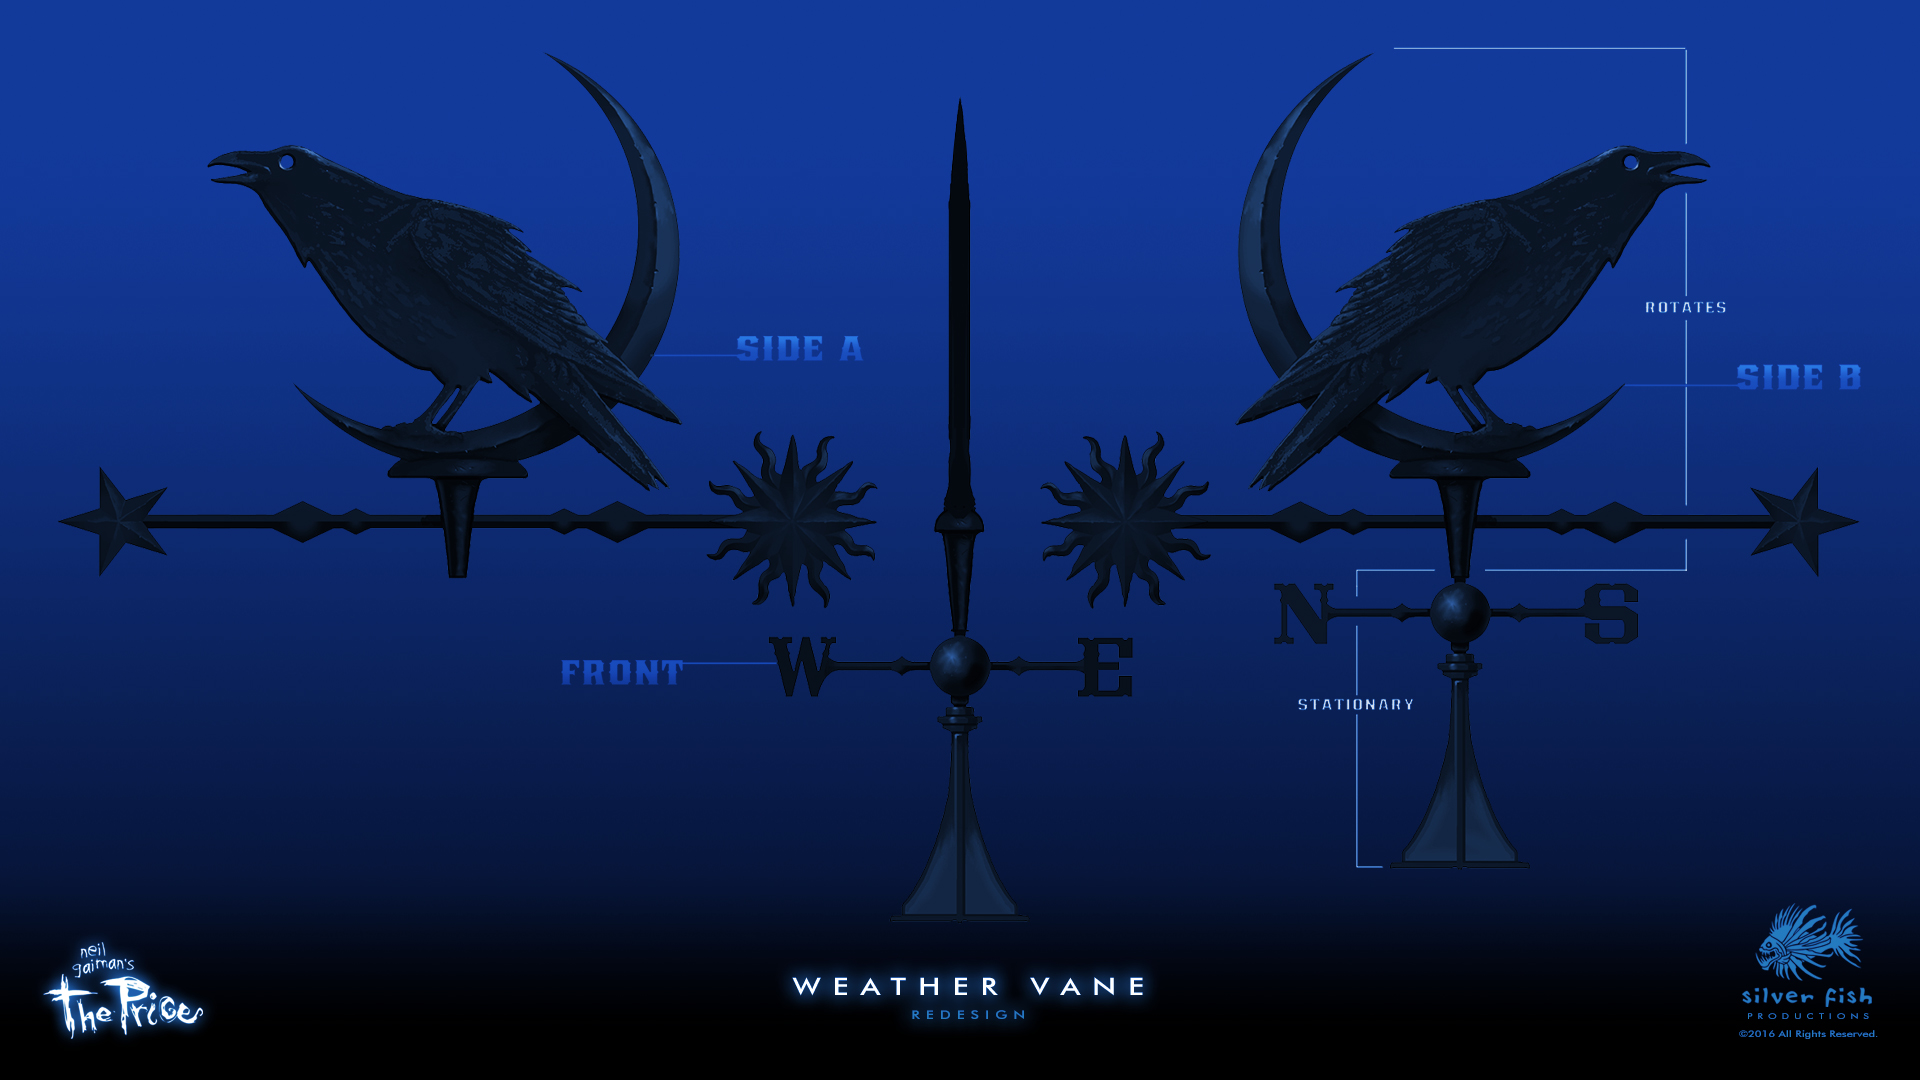 WeatherVane_Design_01